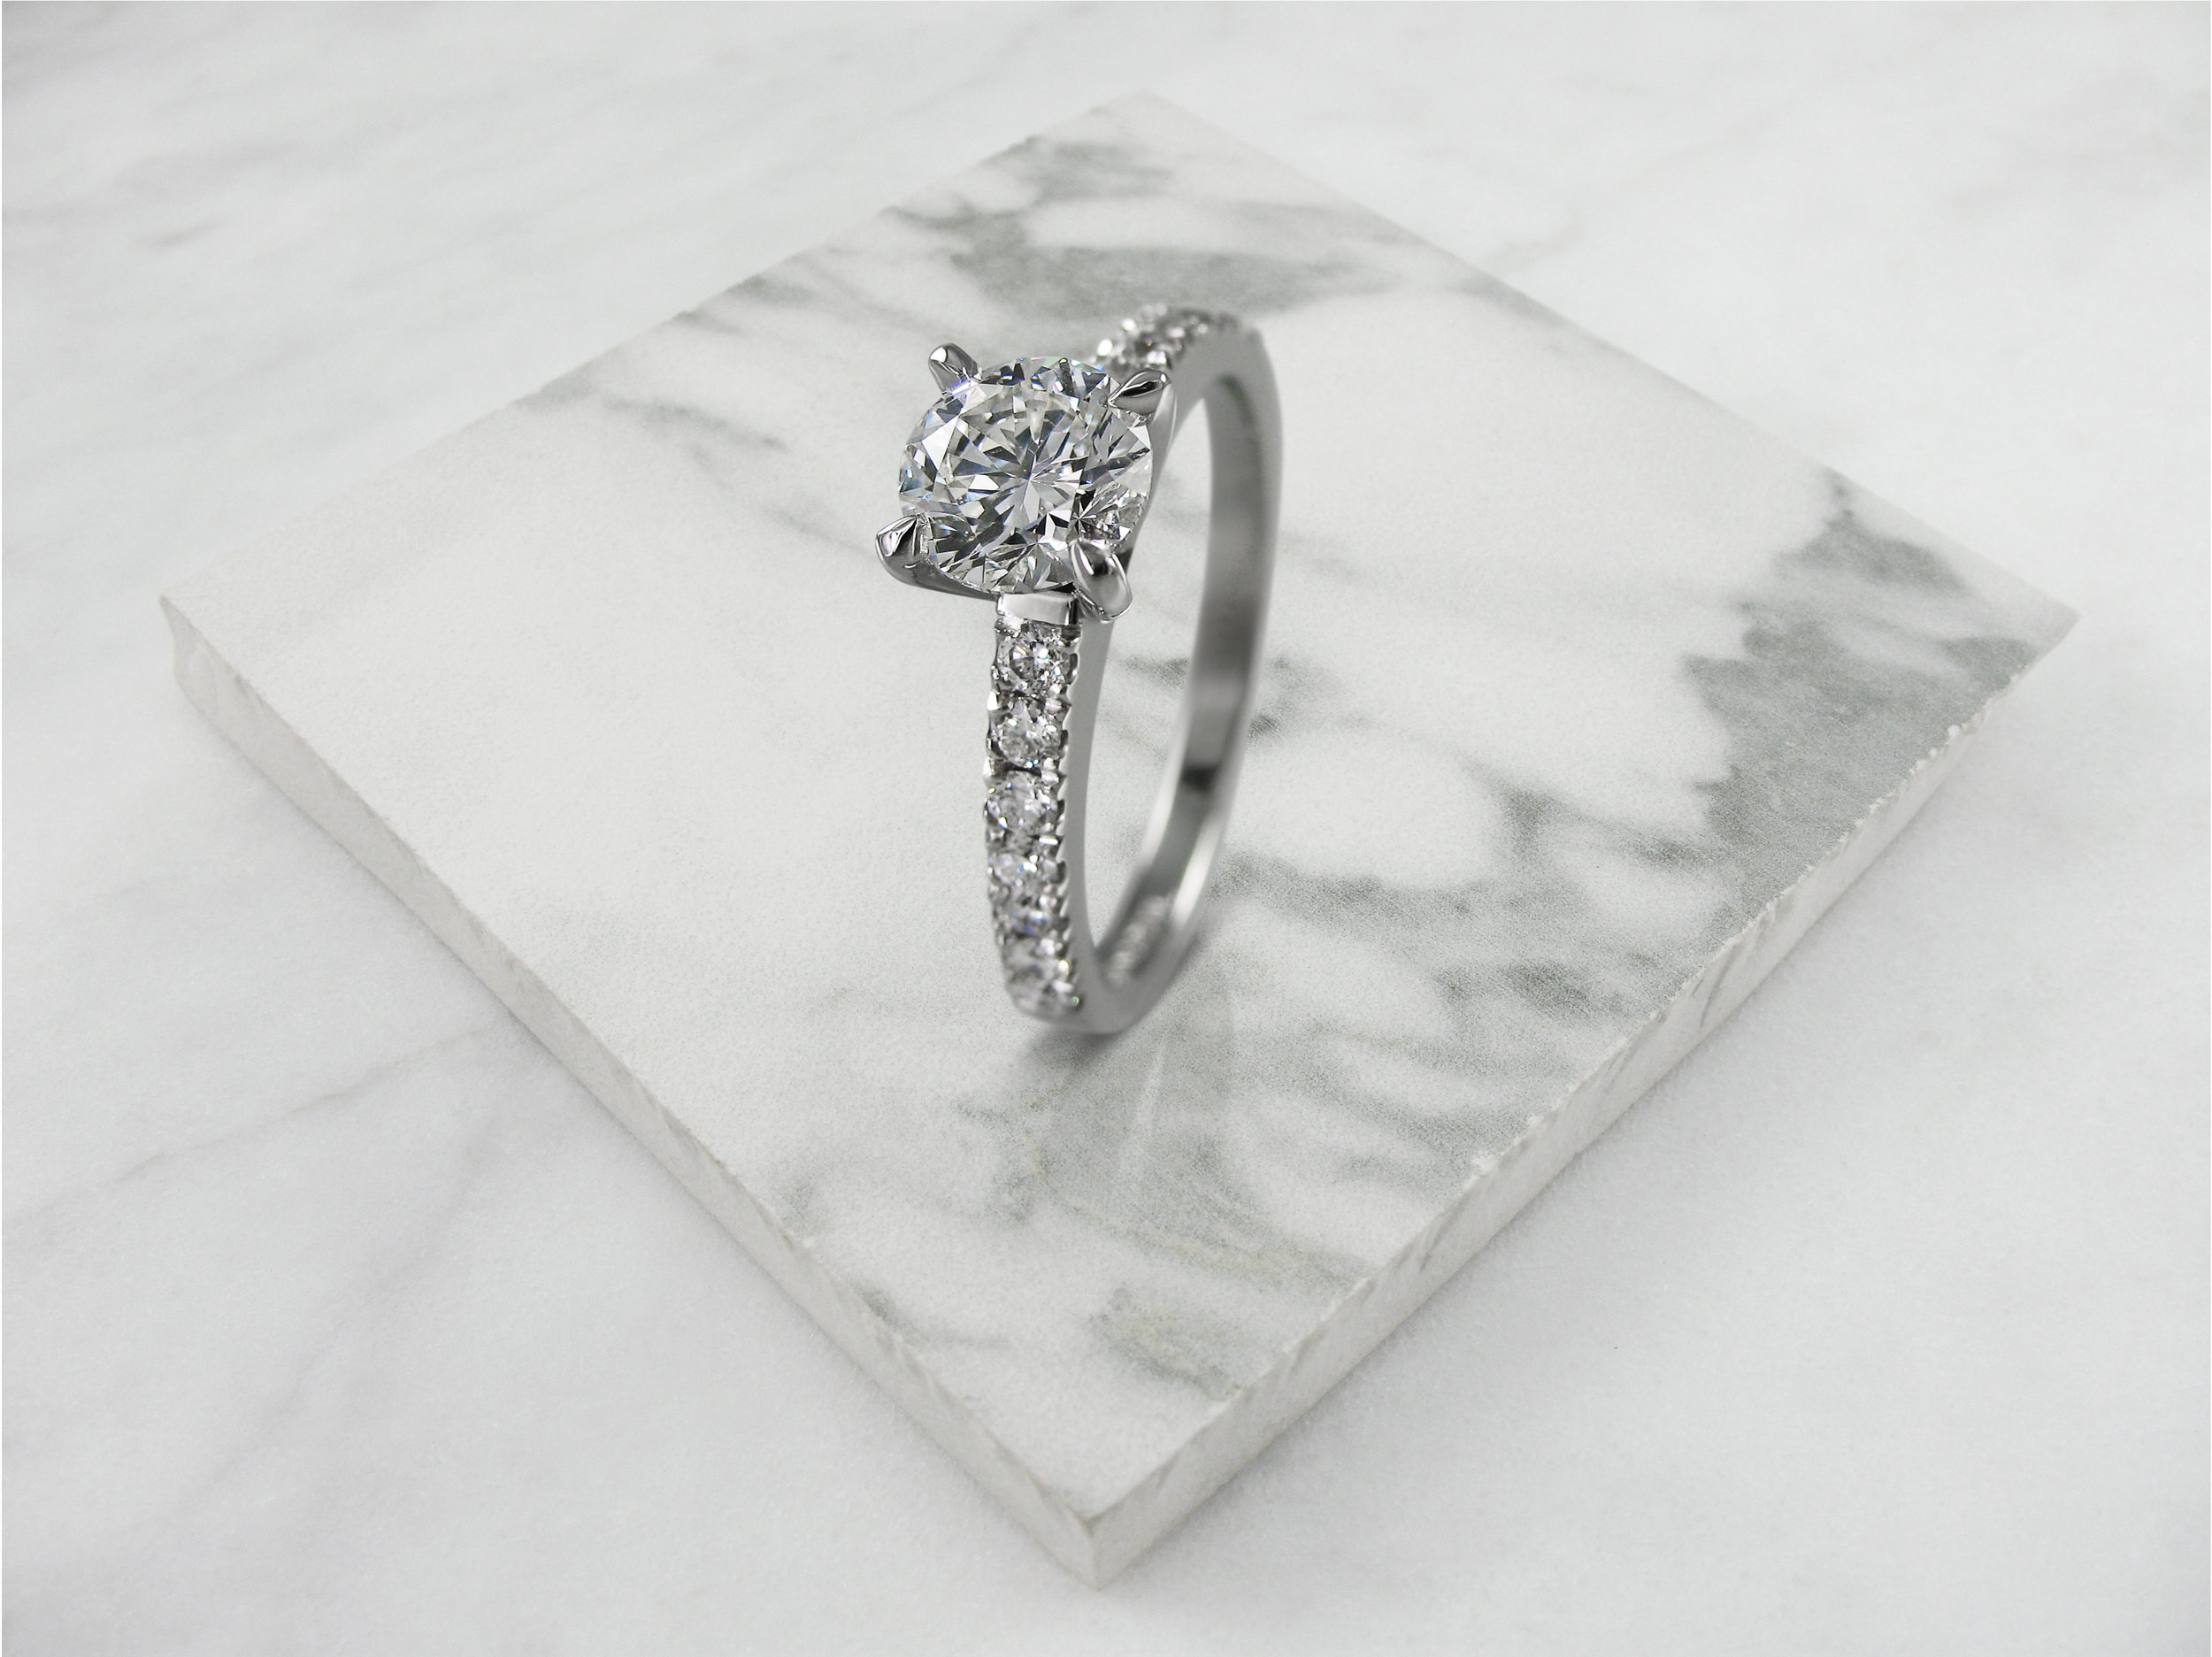 Round brilliant cut diamond four claw engagement ring with diamond band